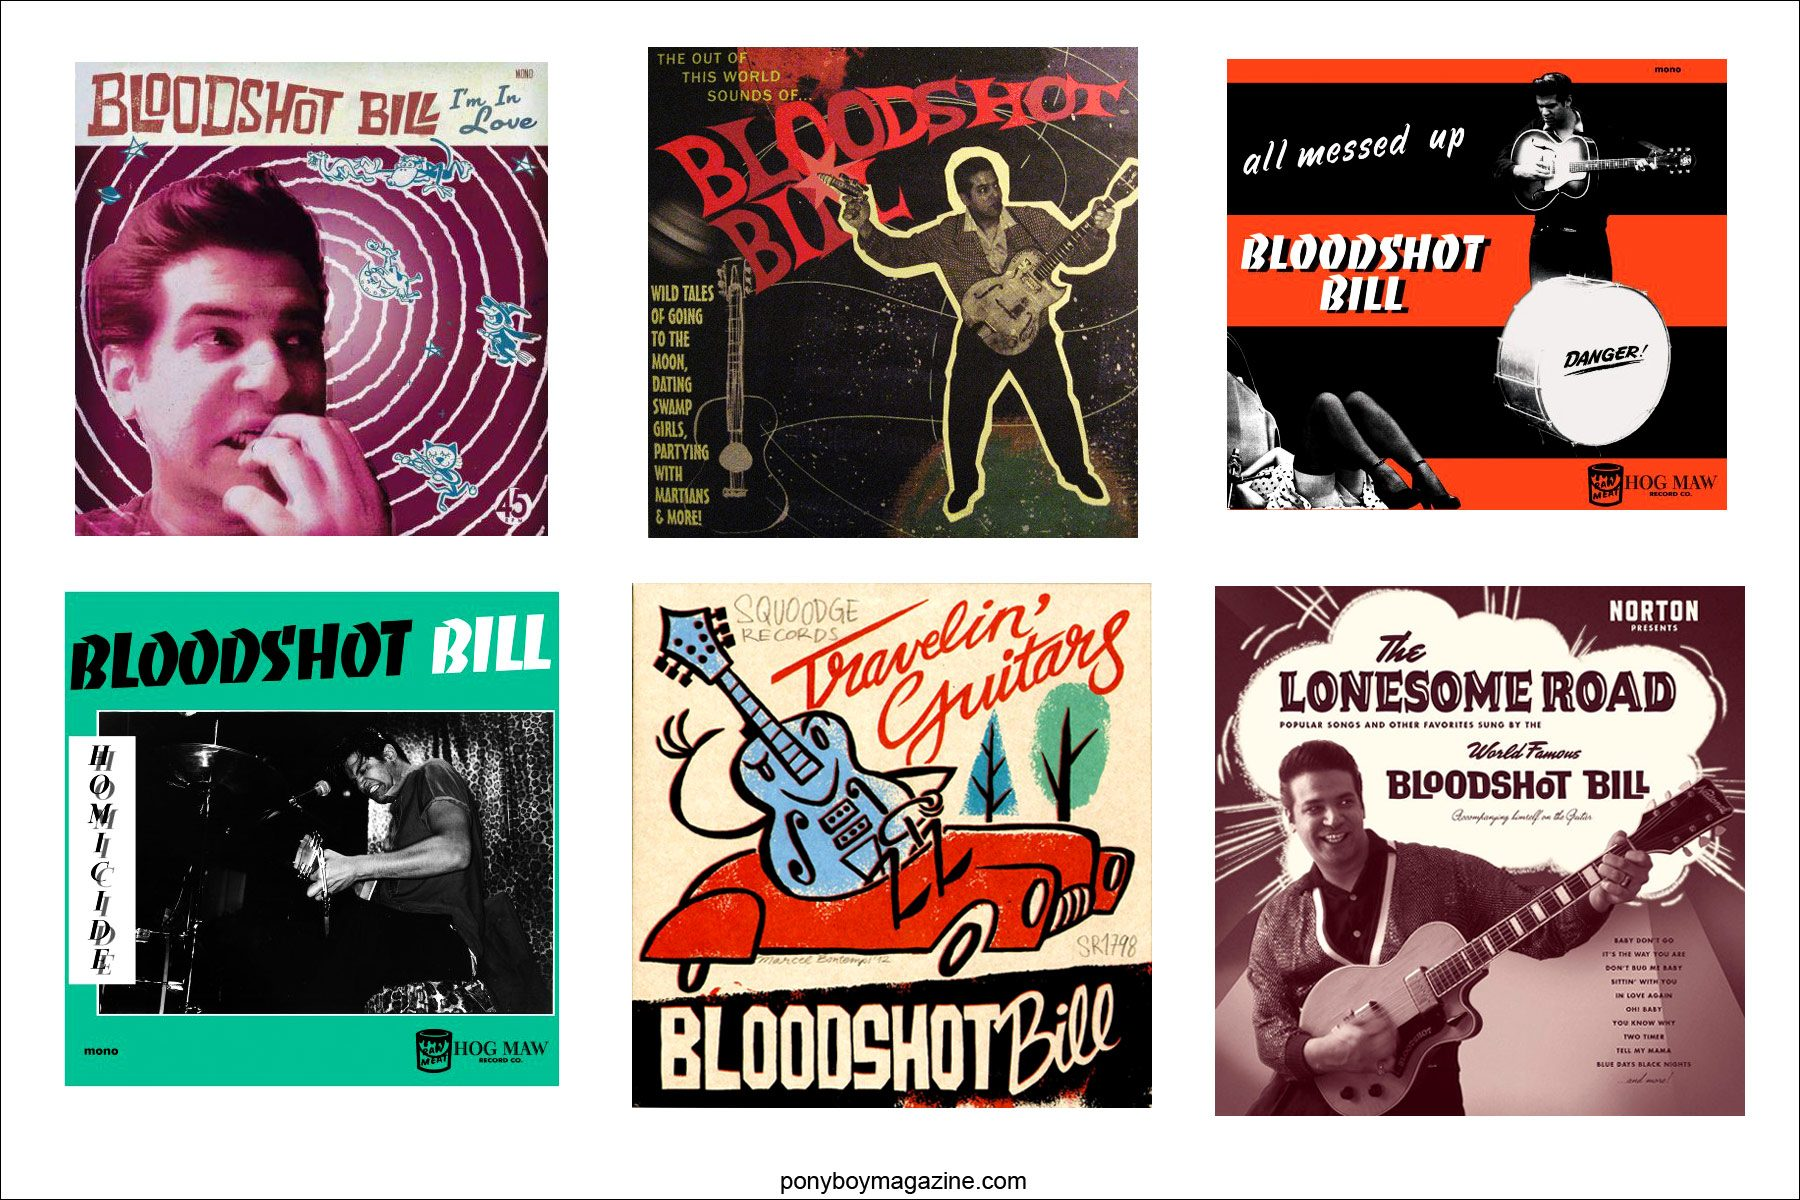 Assorted album covers of Norton Records rockabilly performer Bloodshot Bill. For Ponyboy Magazine in New York City.